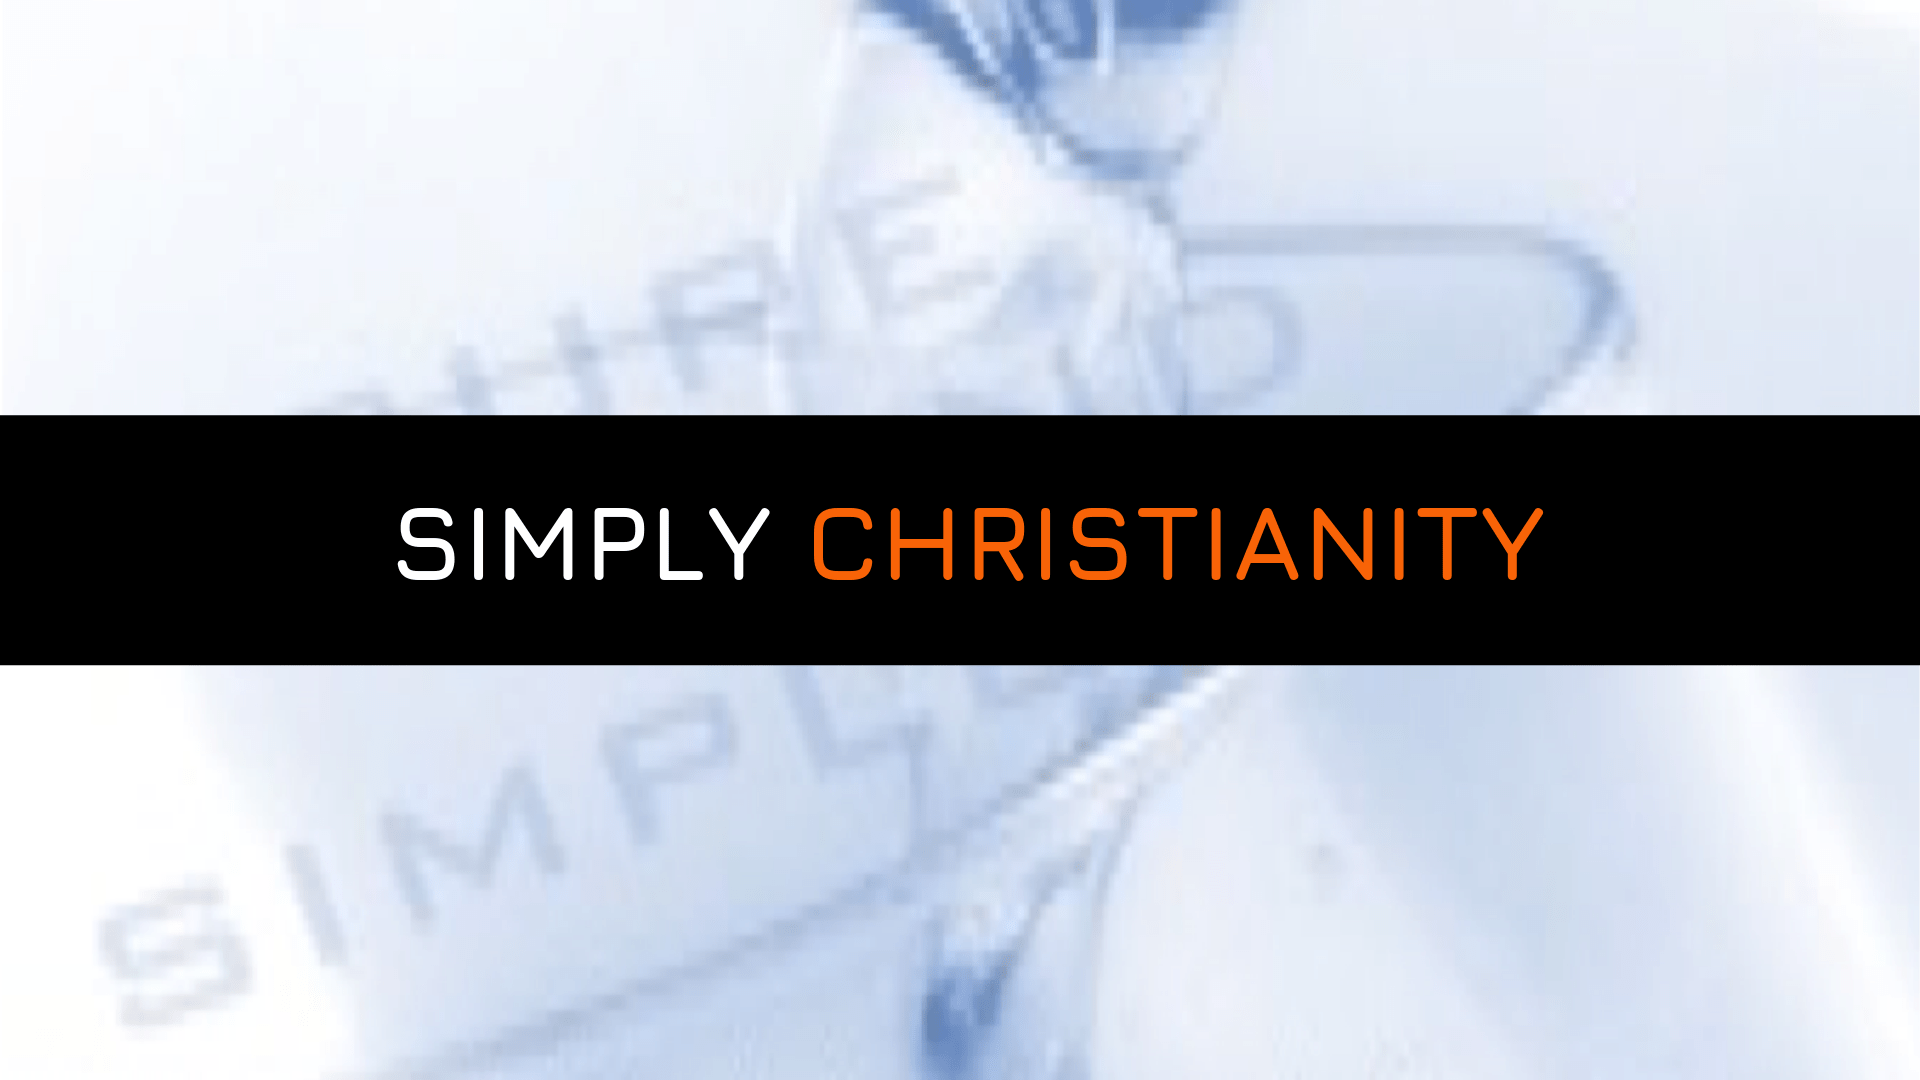 SIMPLY CHRISTIANITY